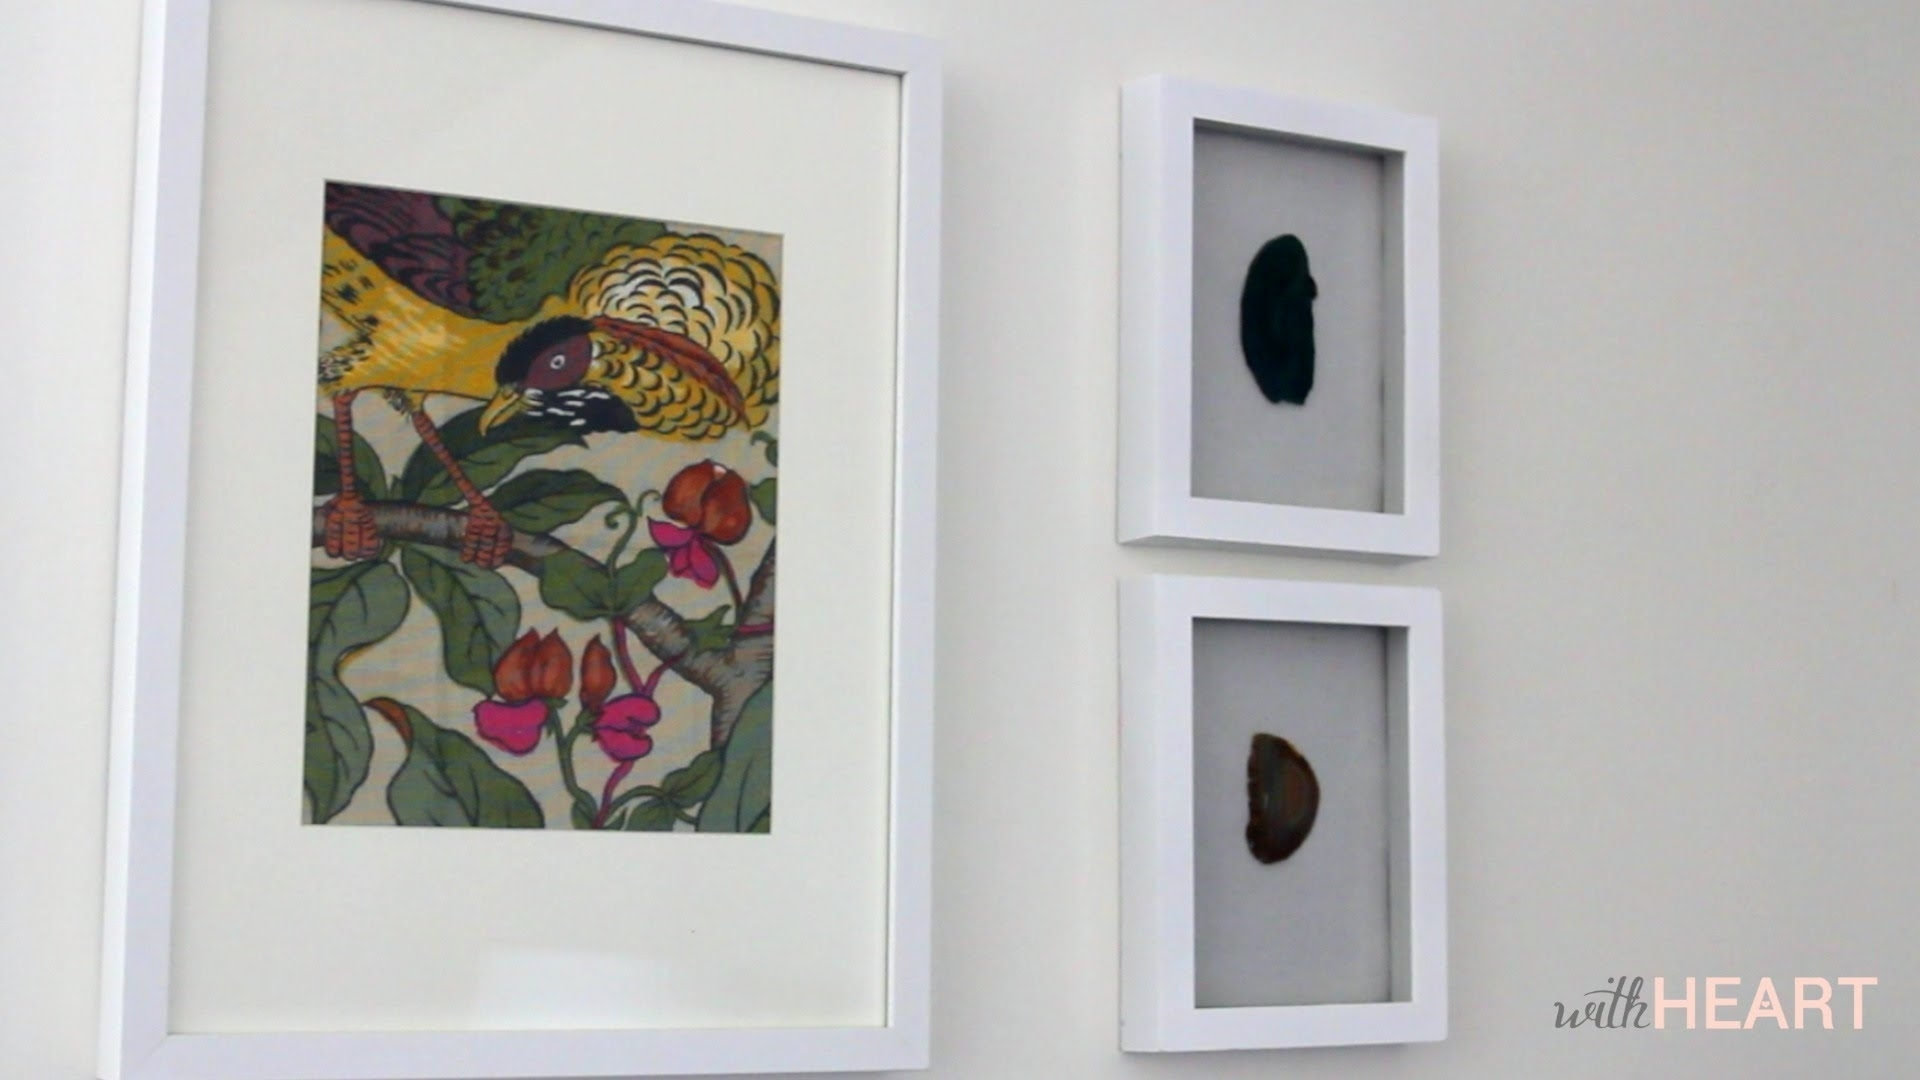 Easy Art: Framed Fabric | Withheart – Youtube In Most Recent Fabric Wall Art Frames (View 13 of 15)